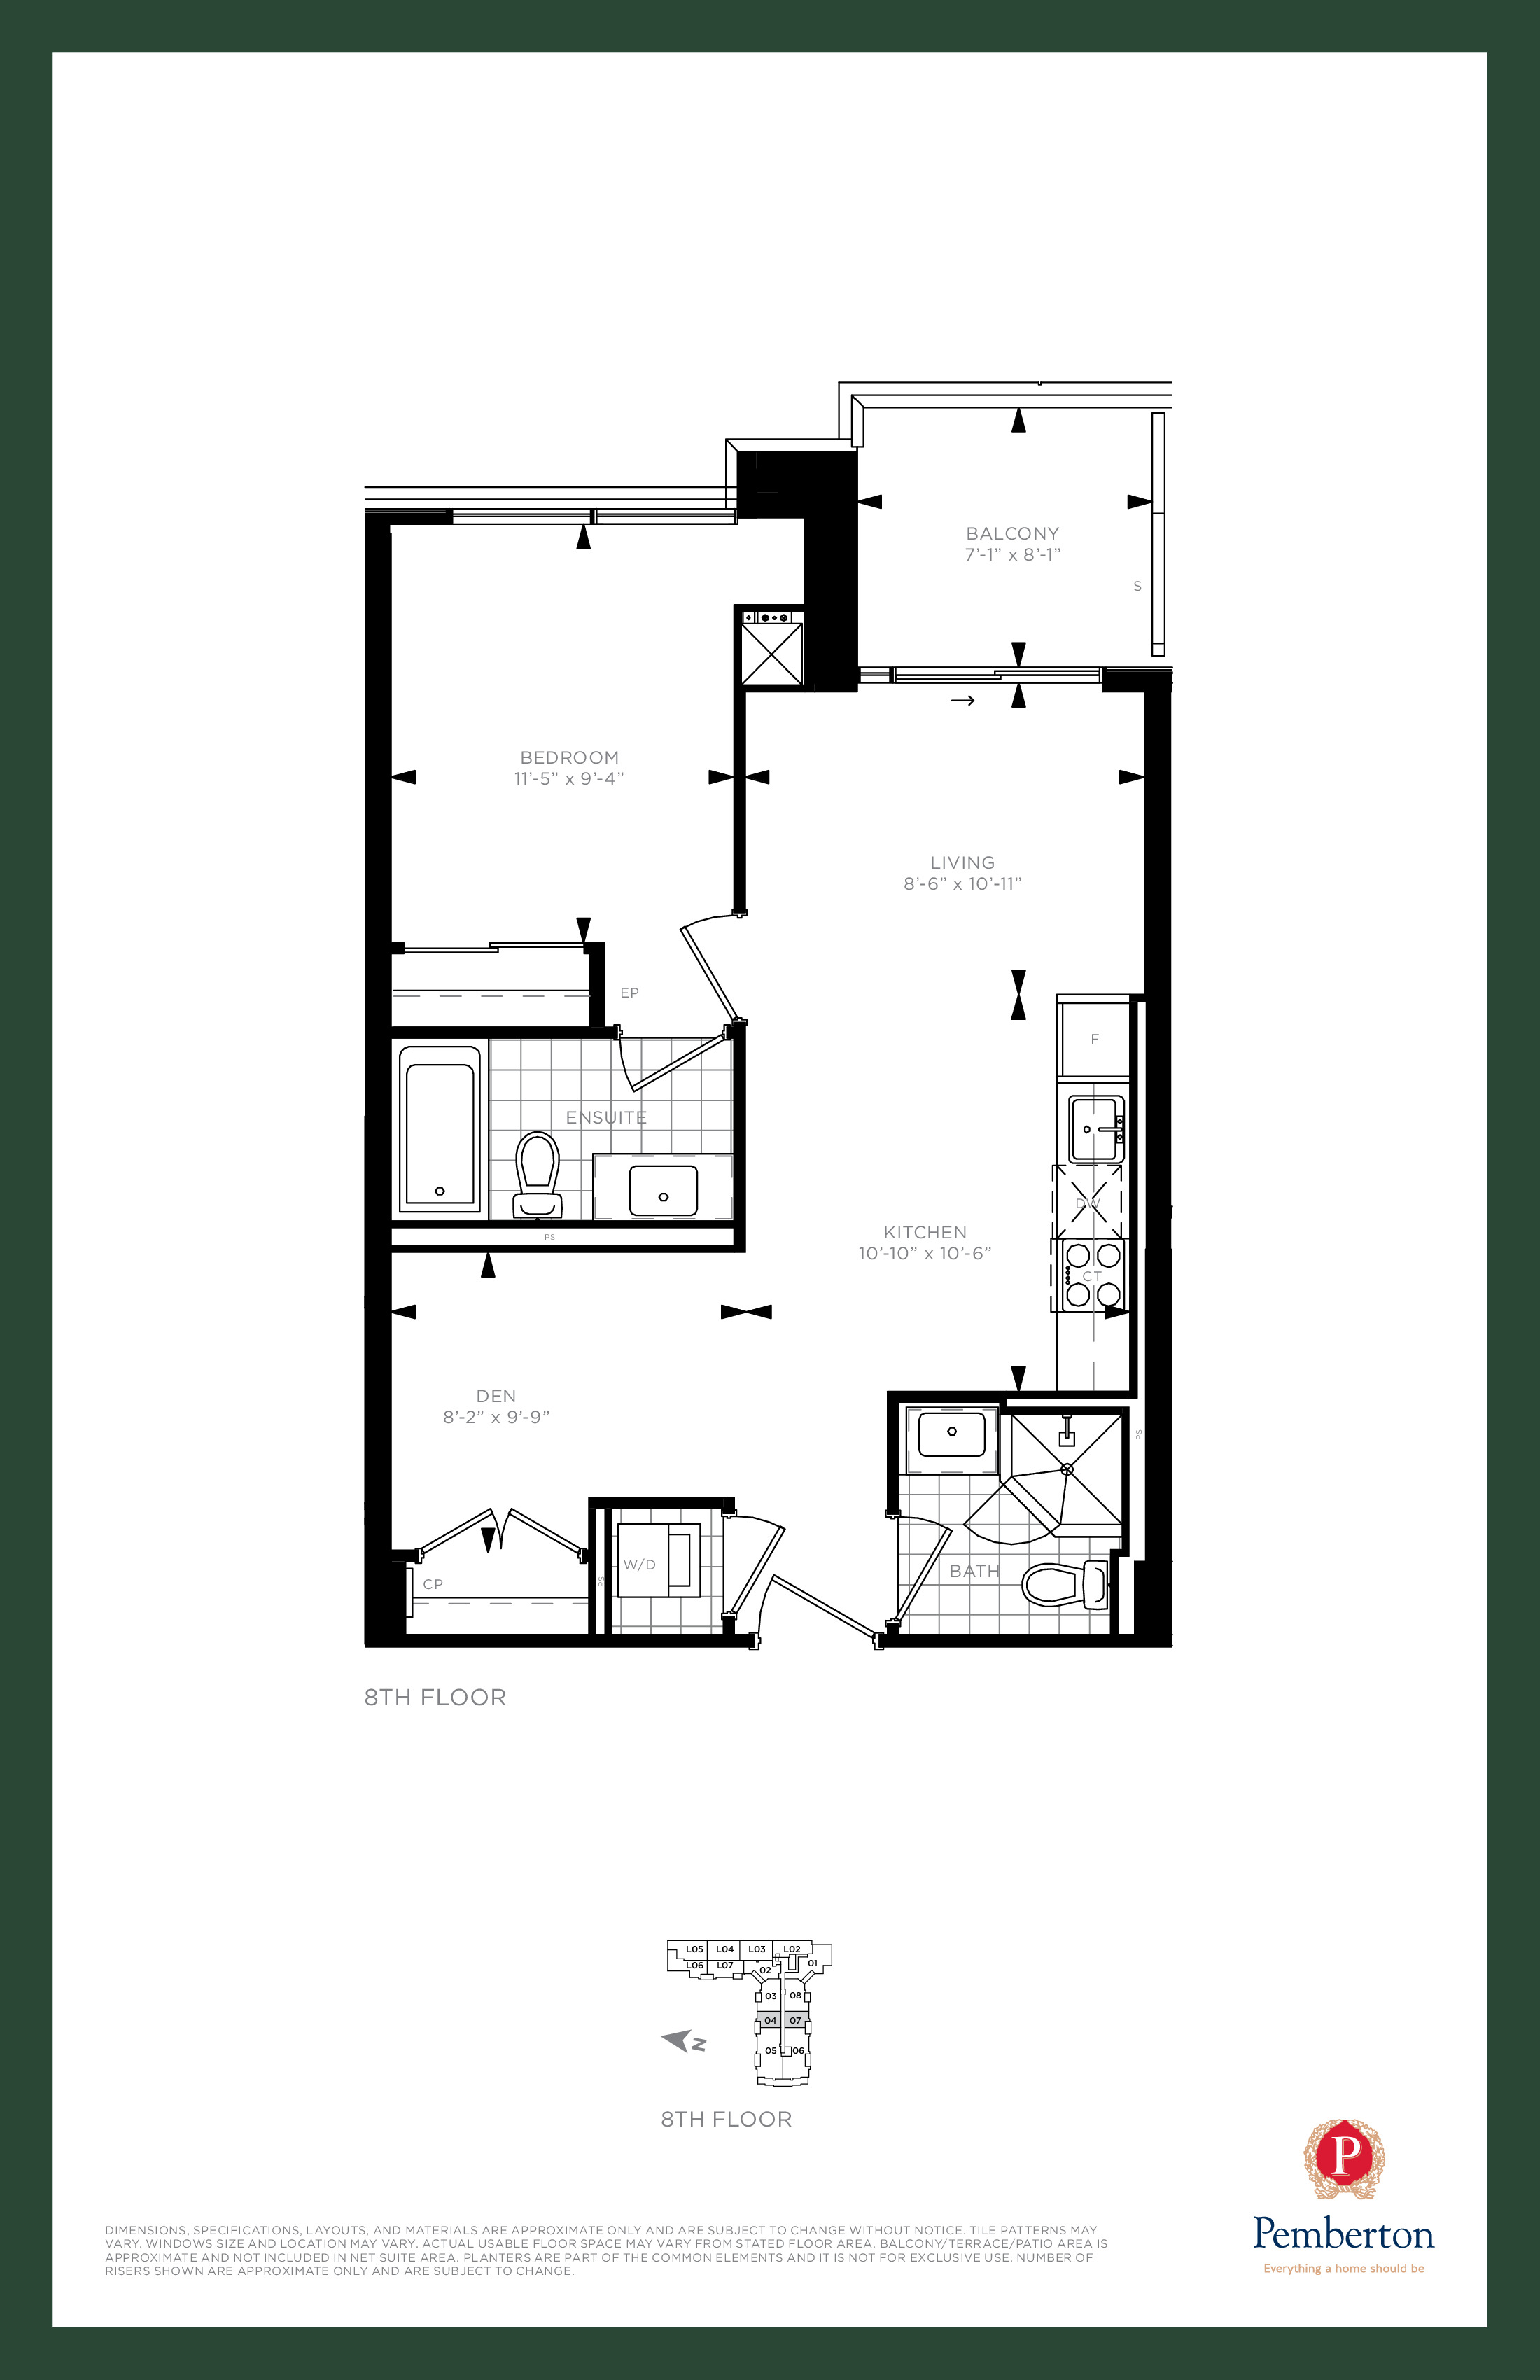 Suite F - Building A Floor Plan at 9th & Main Condos + Towns - 645 sq.ft